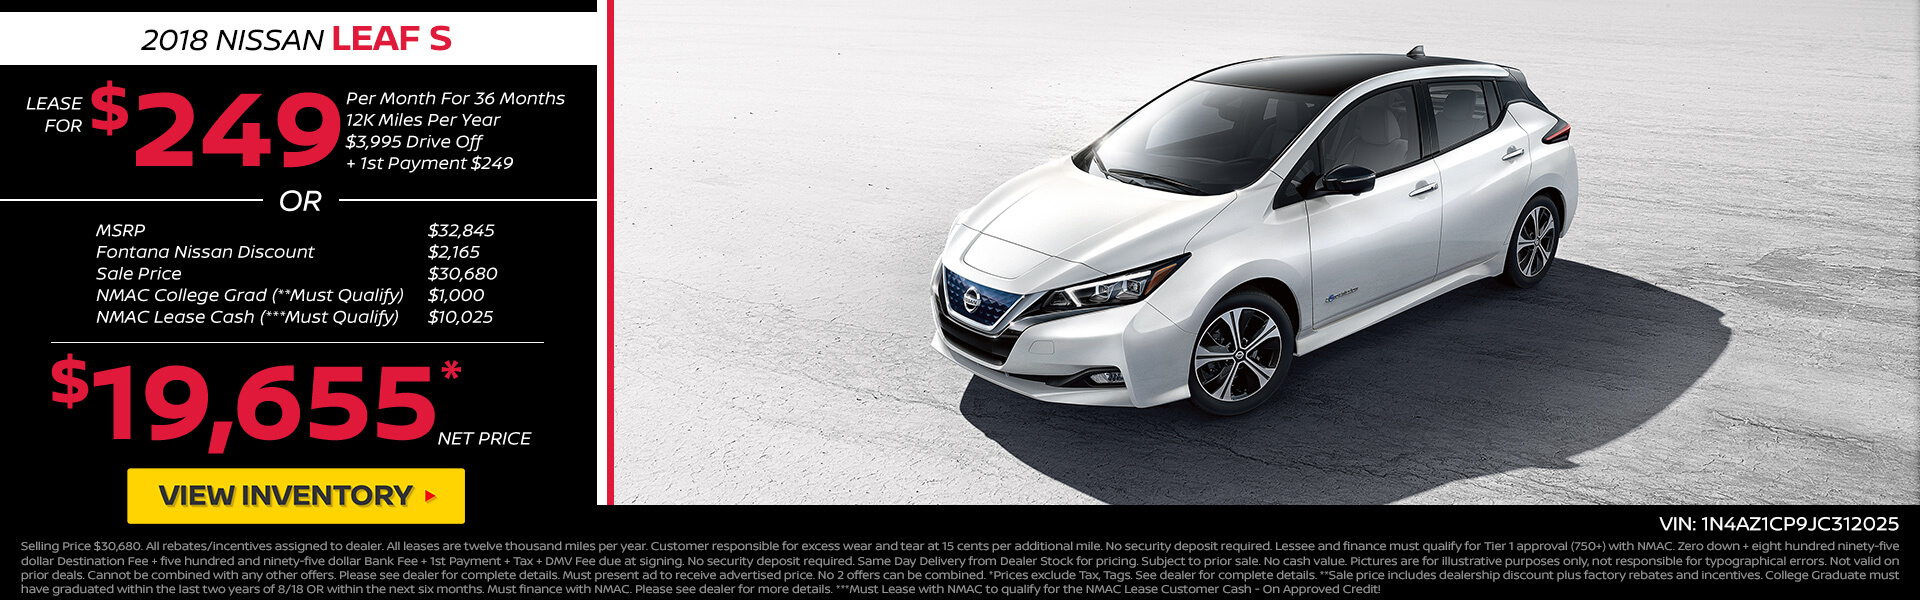 Nissan Leaf $249 Lease or $19,655 Purchase